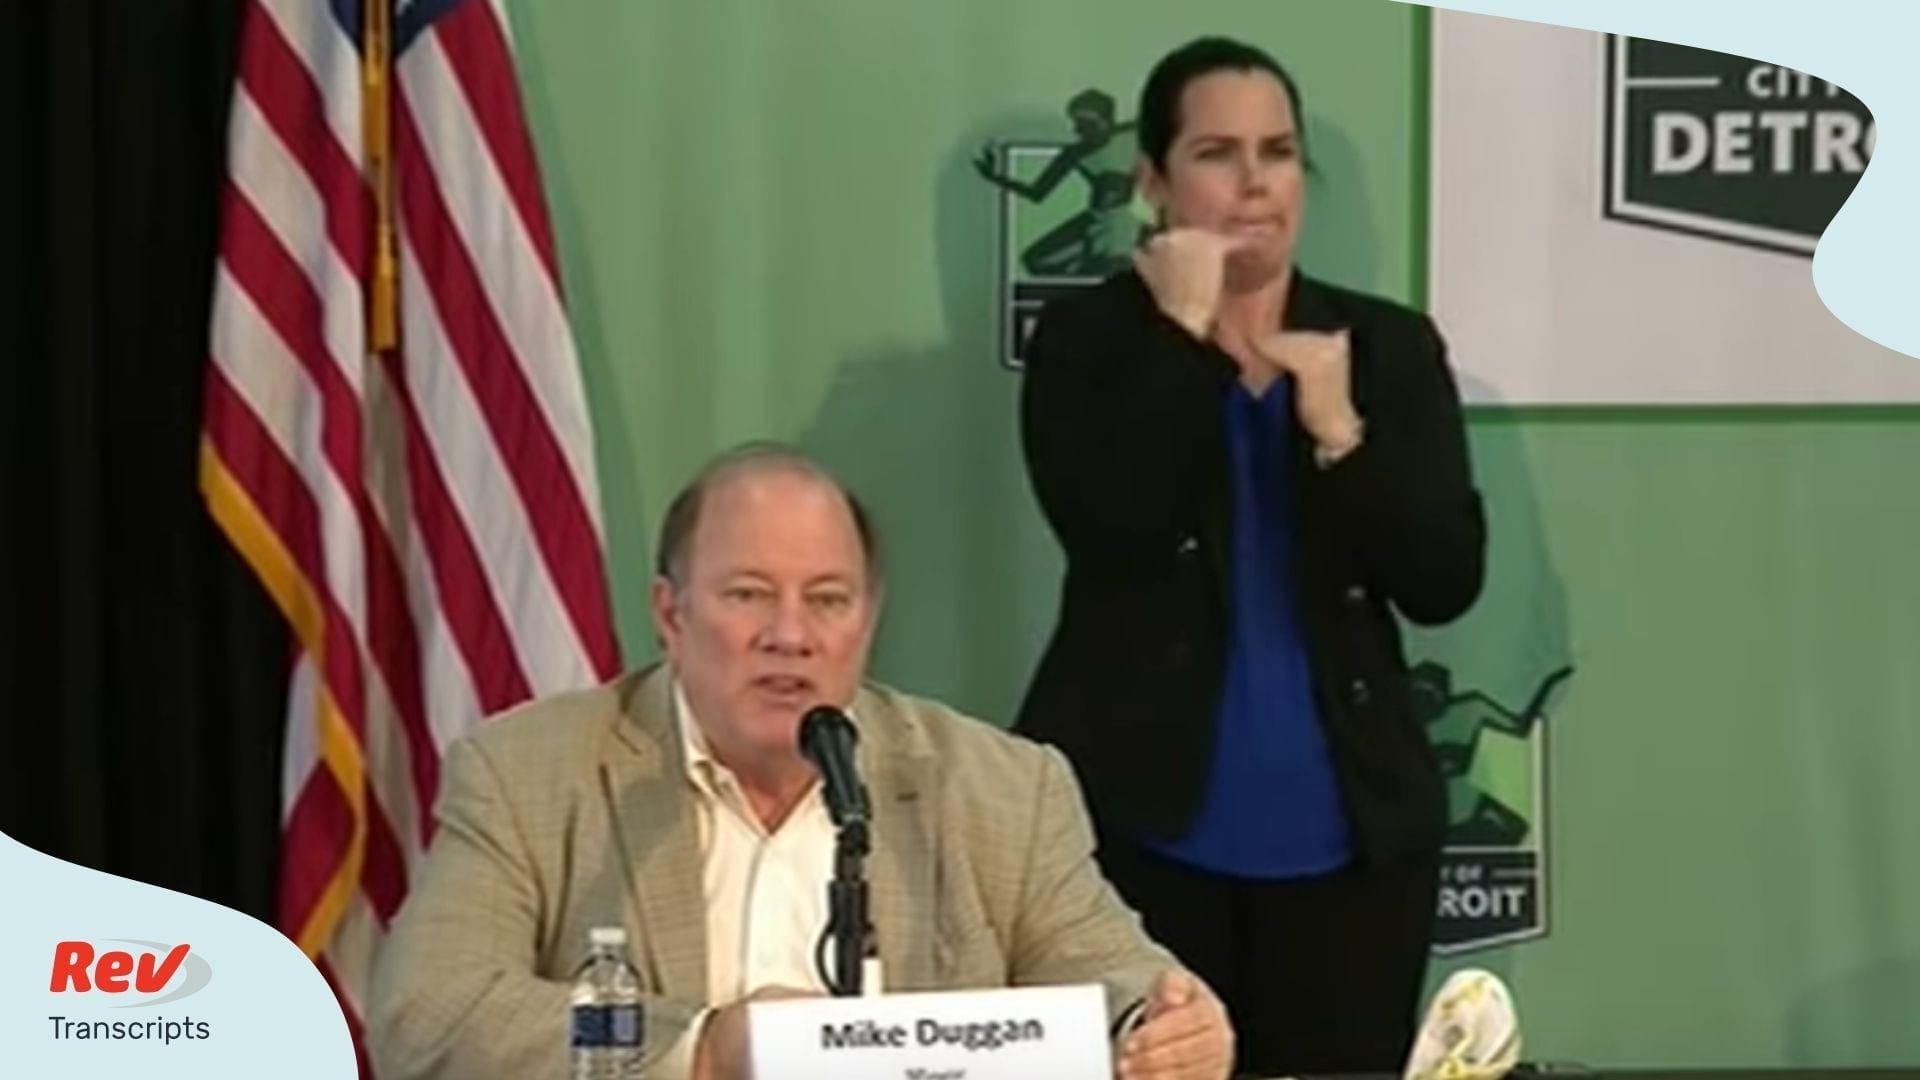 Detroit Mayor Mike Duggan April 8 Presser